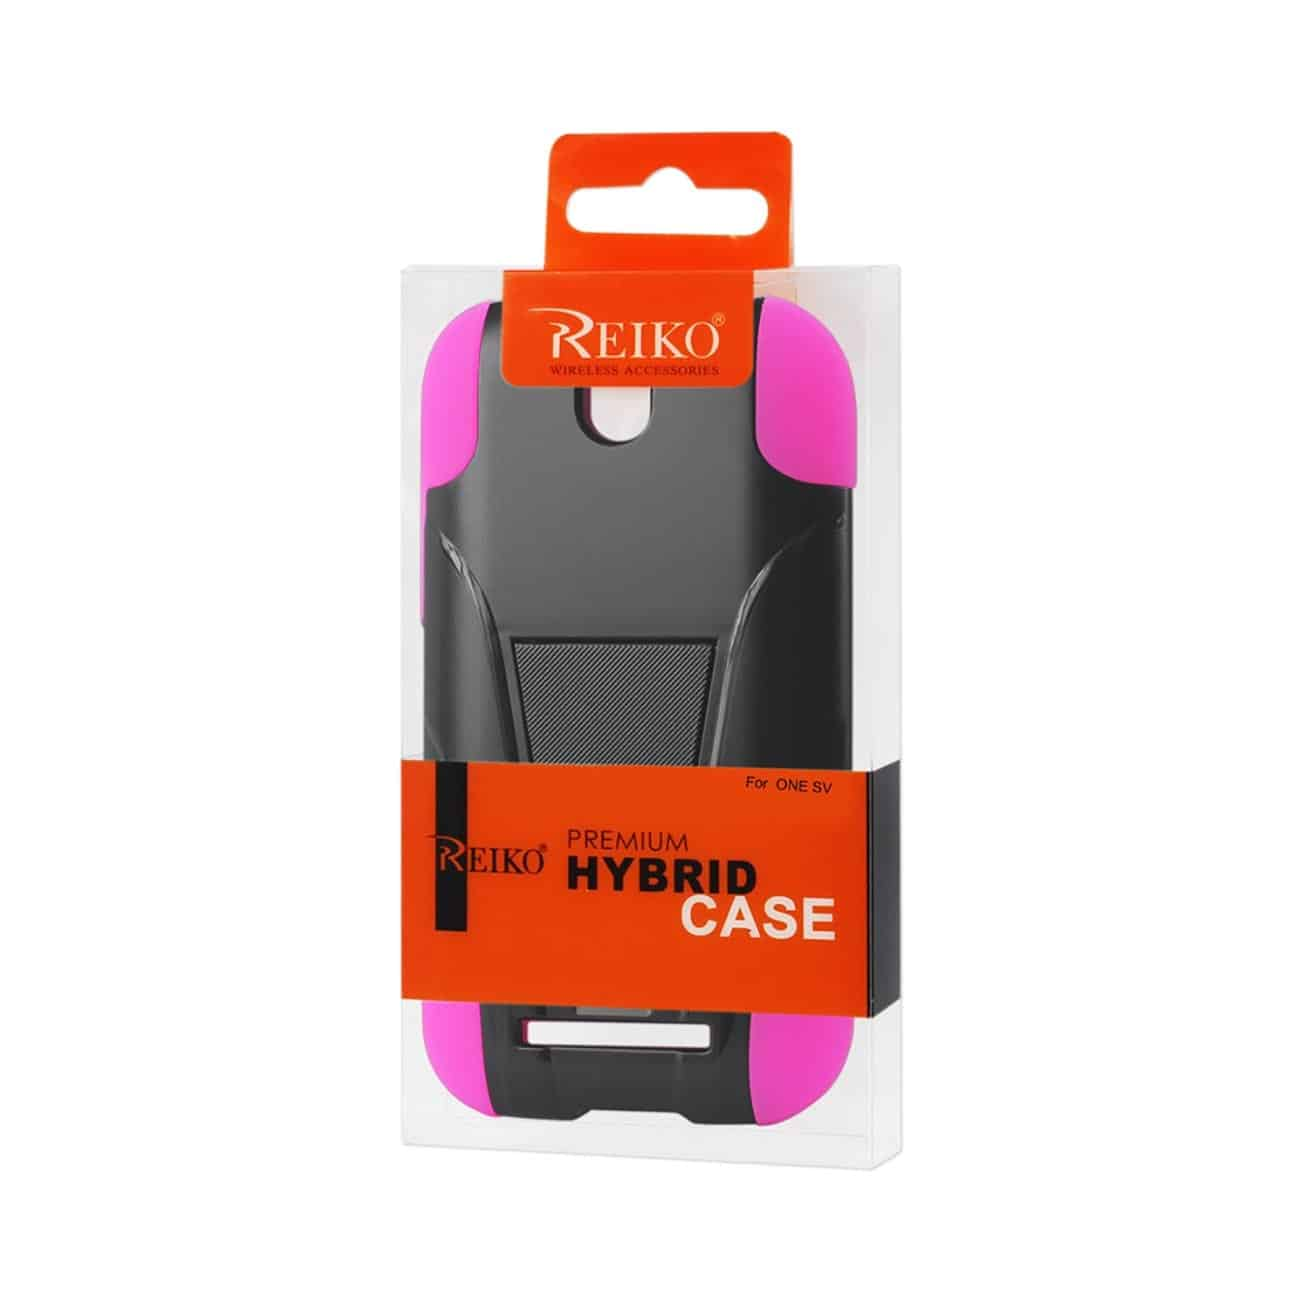 HTC ONE SV HYBRID HEAVY DUTY CASE WITH KICKSTAND IN BLACK HOT PINK